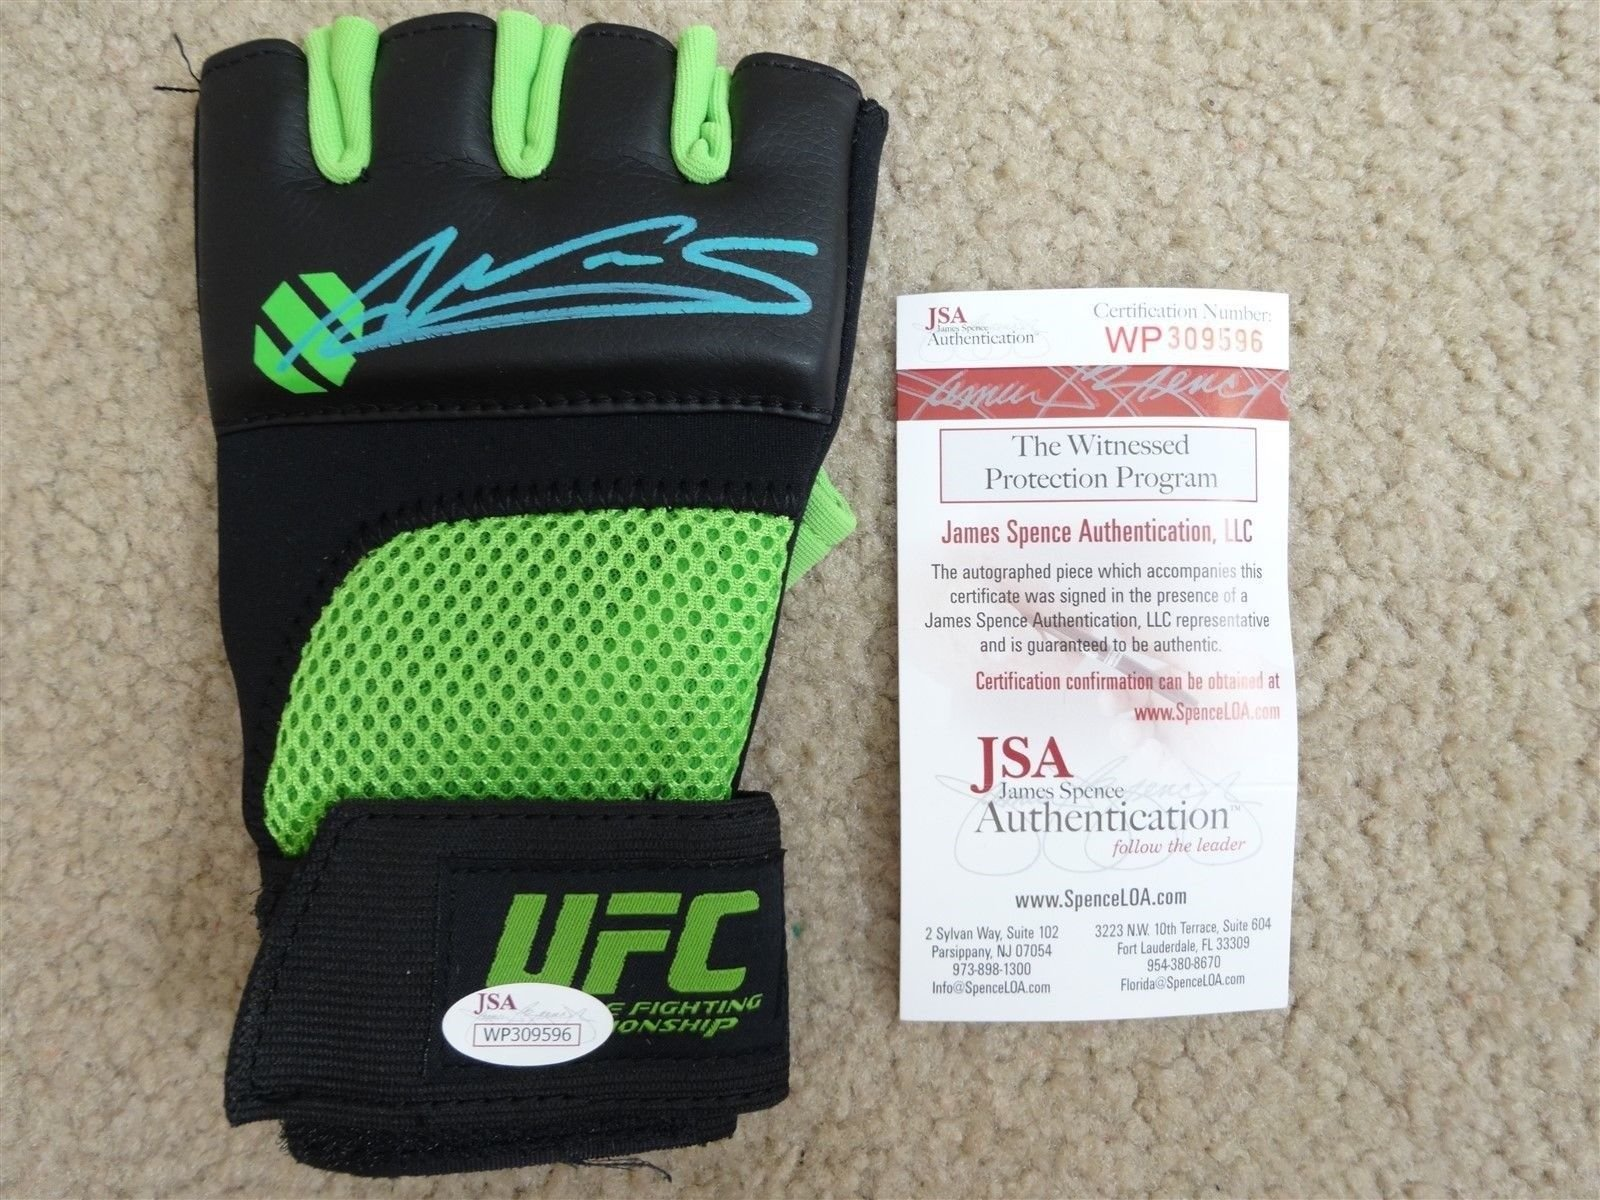 AMANDA NUNES SIGNED AUTO GREEN AND BLACK UFC FIGHT GLOVE JSA AUTOGRAPHED